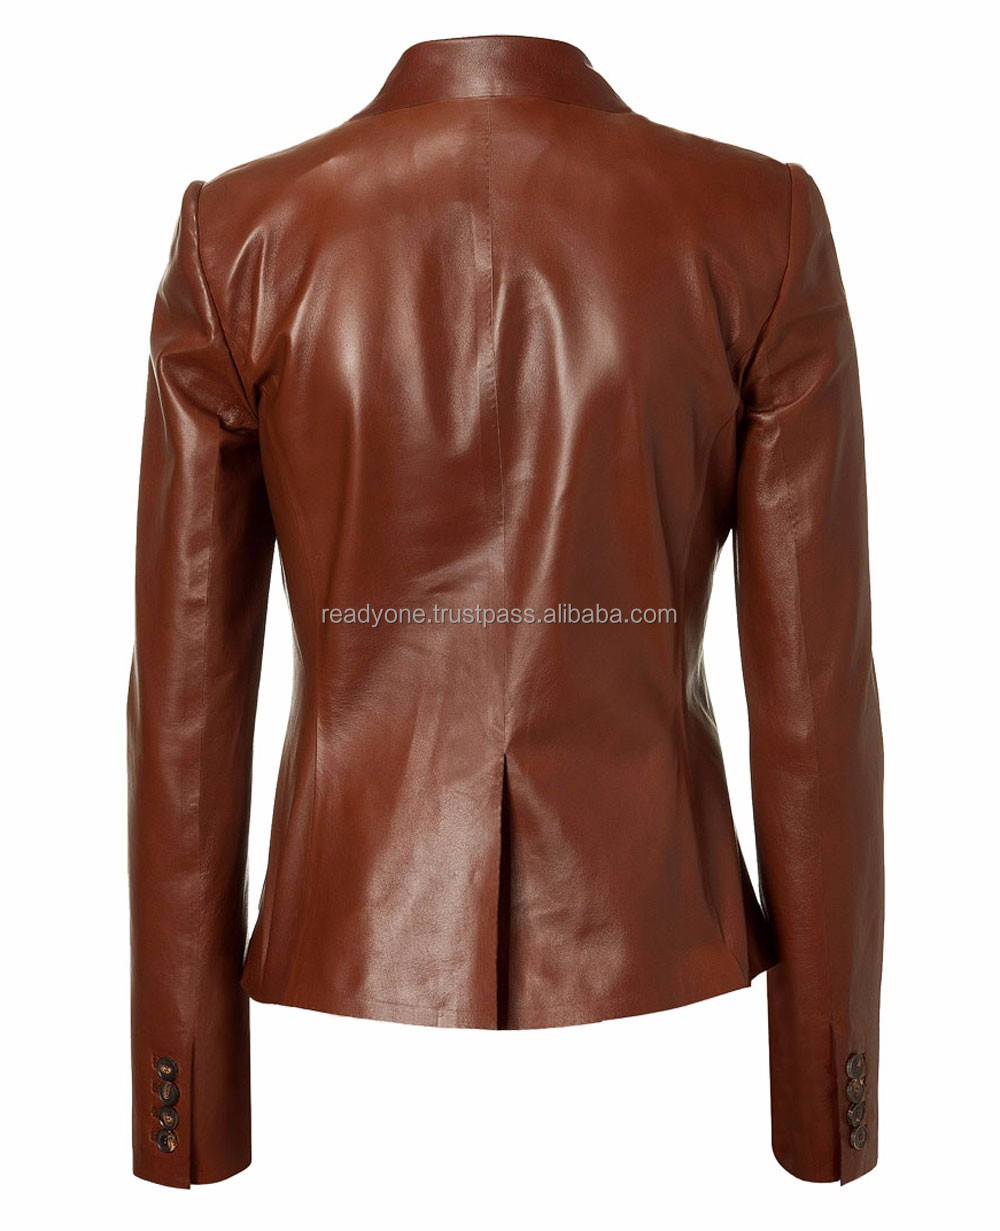 New style jackets women 2017 leather women jackets and blazers